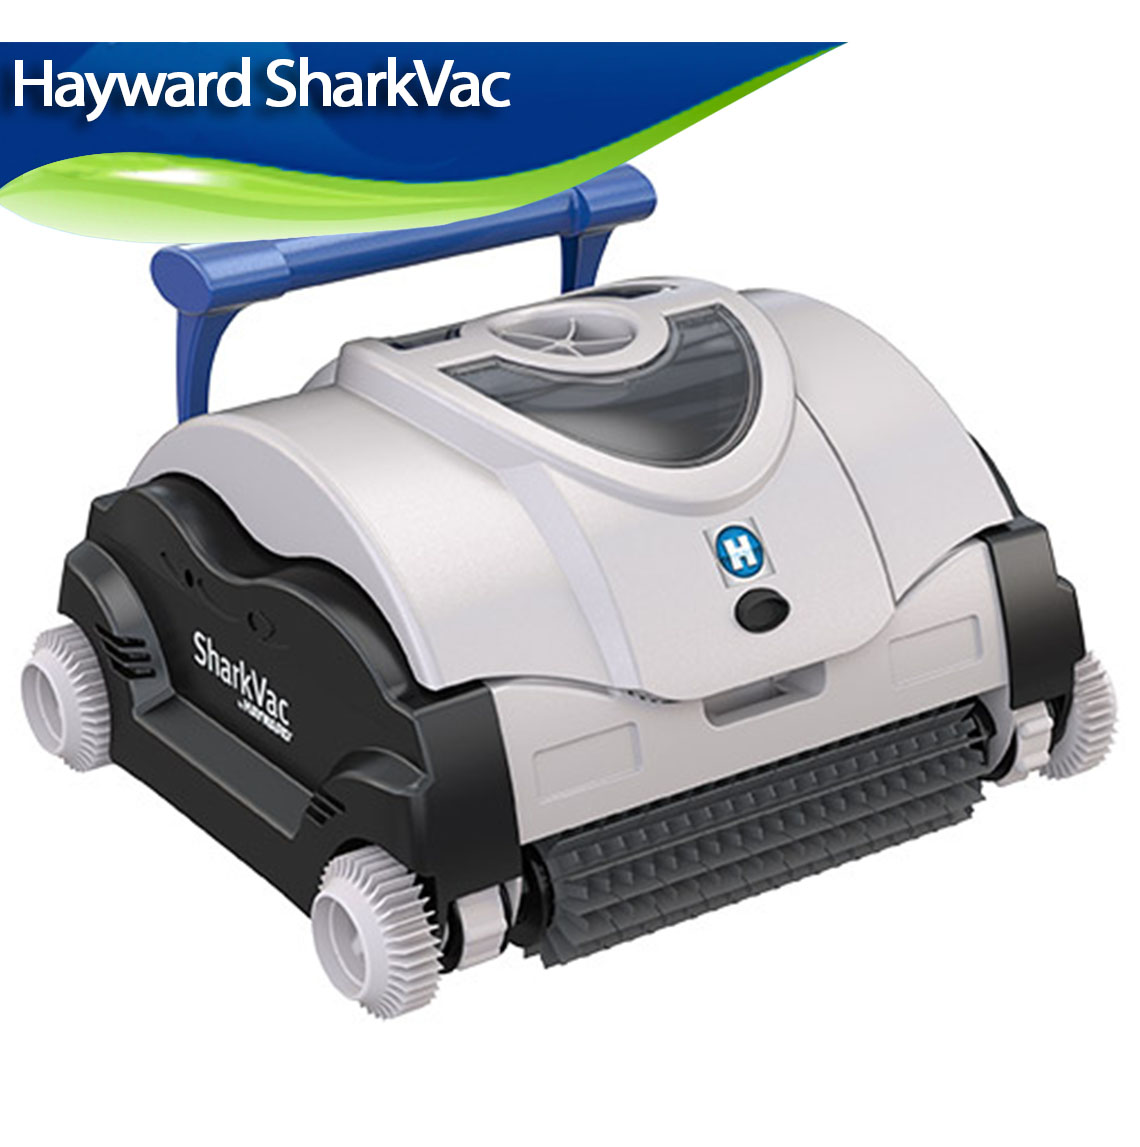 Hayward SharkVac REVIEW